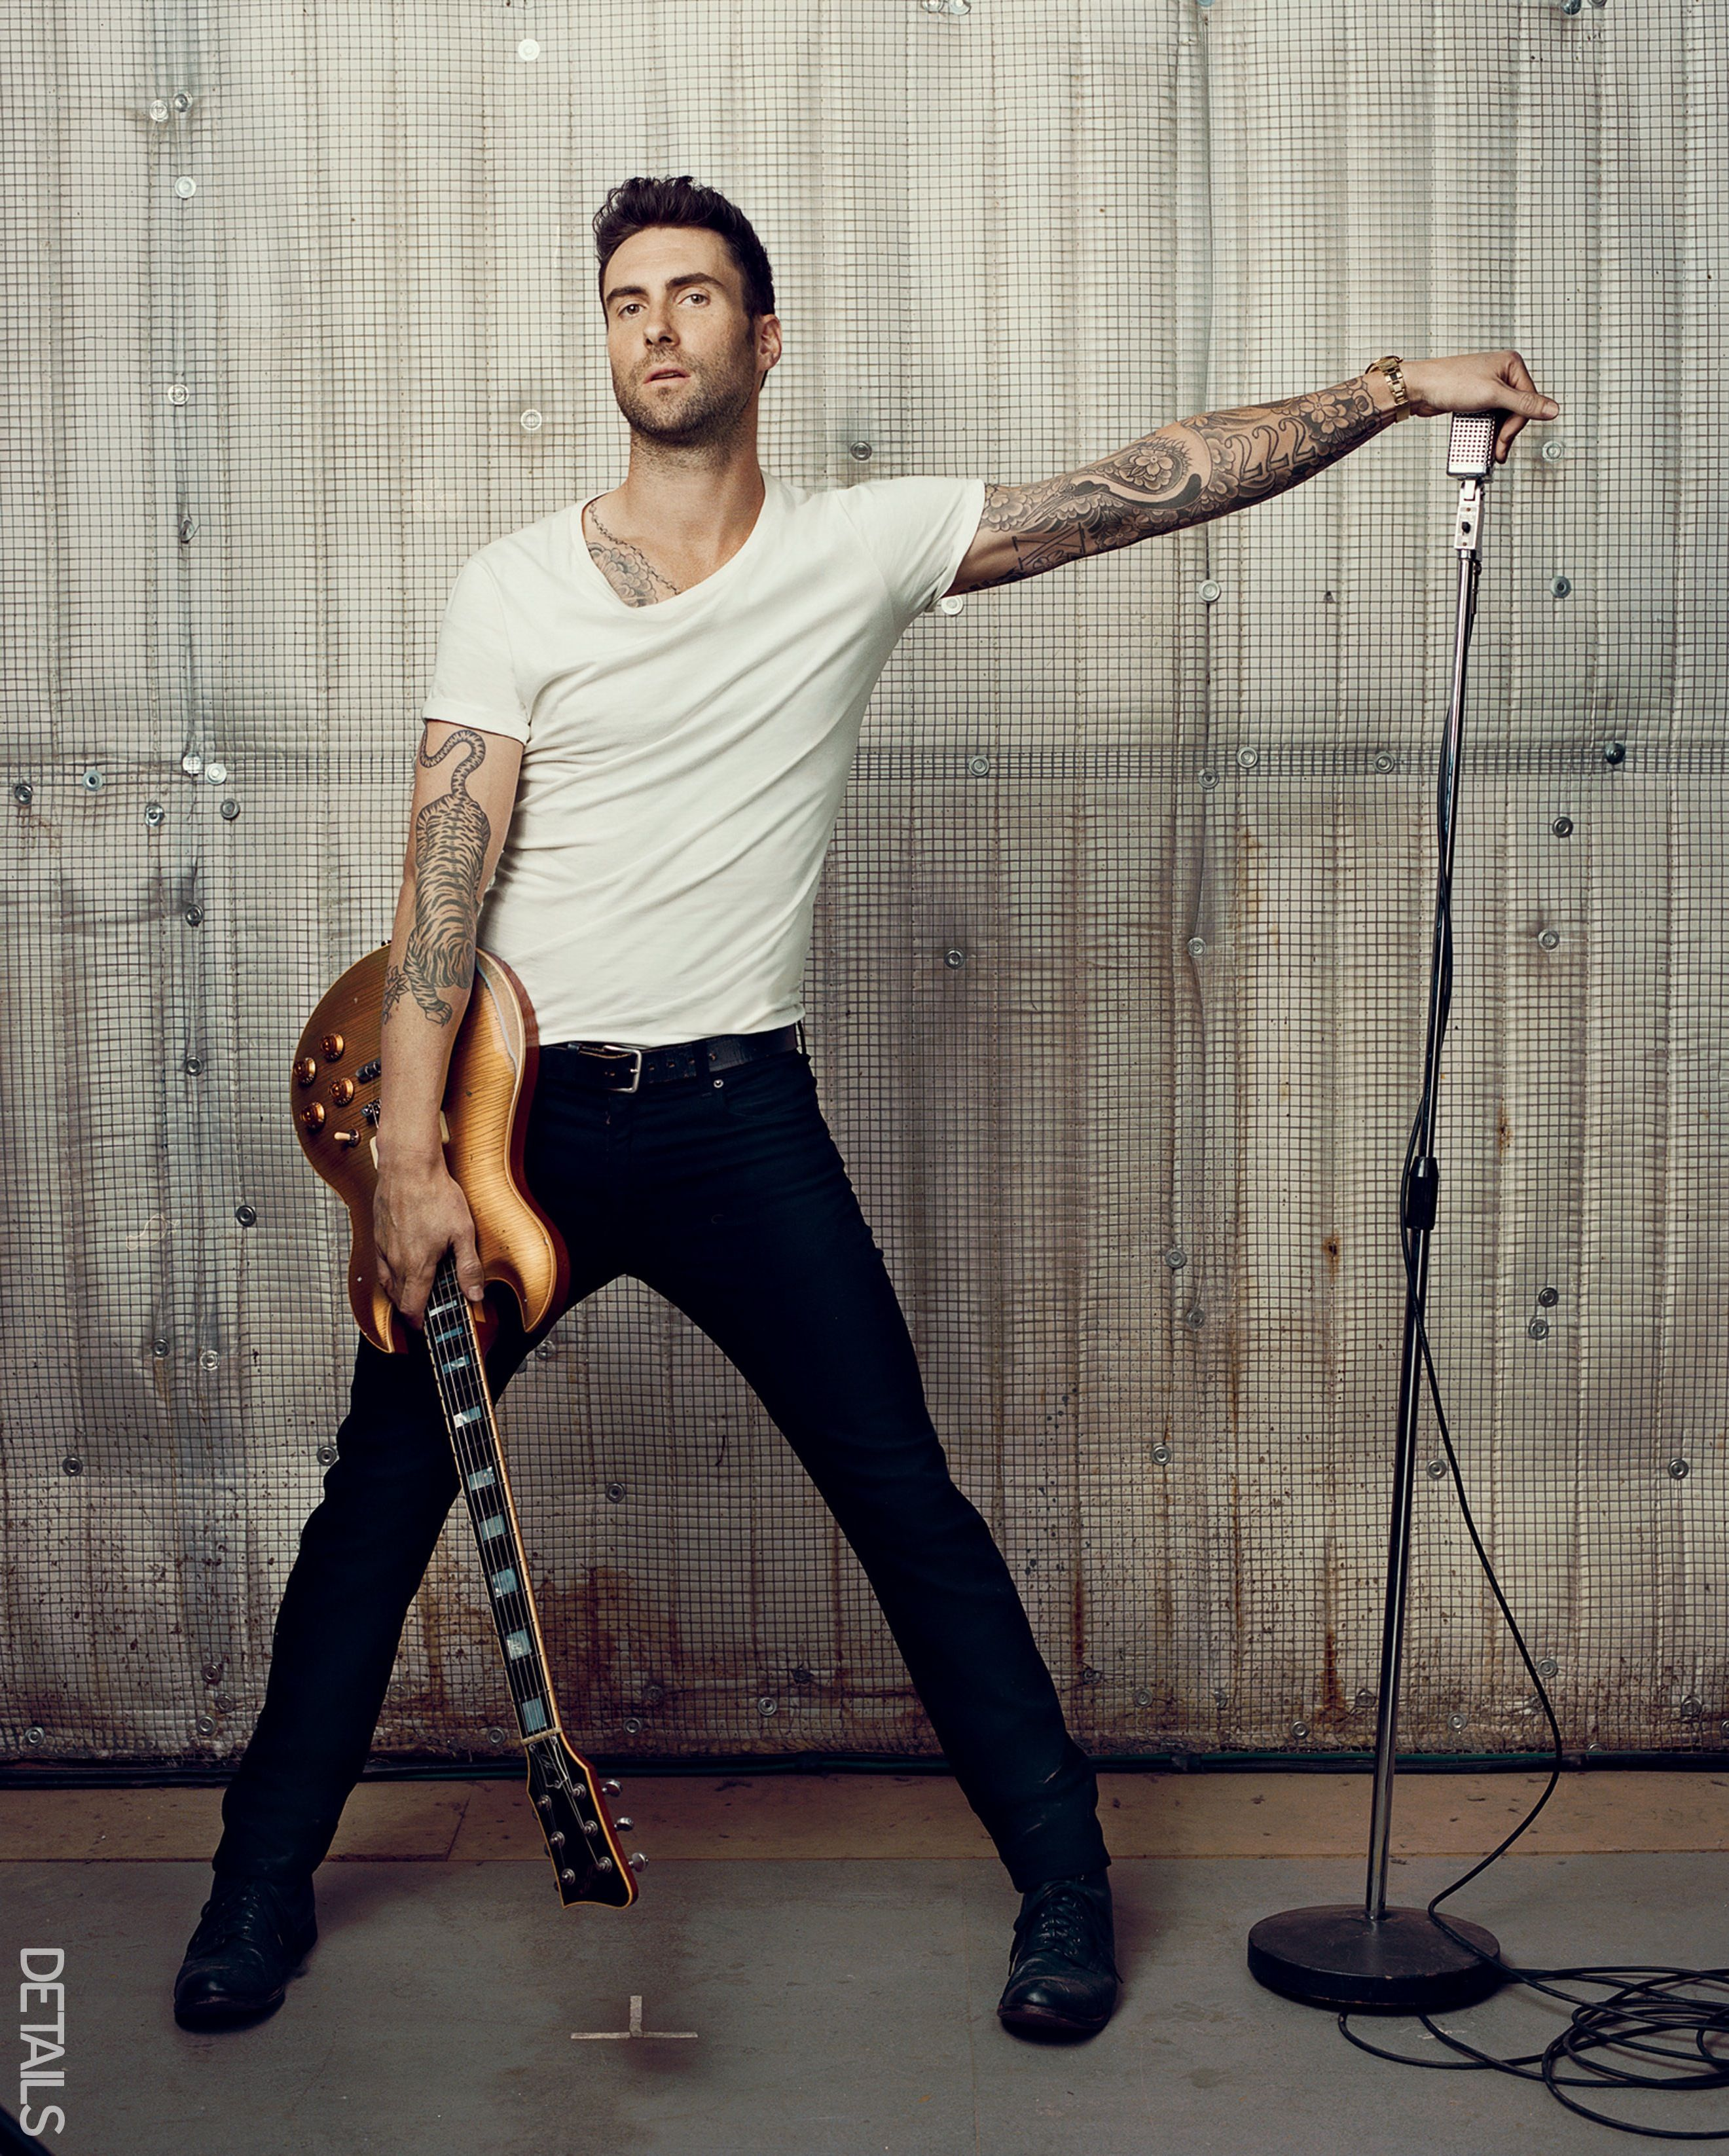 Adam Noah Levine Born March 18 1979 Is An American Singer